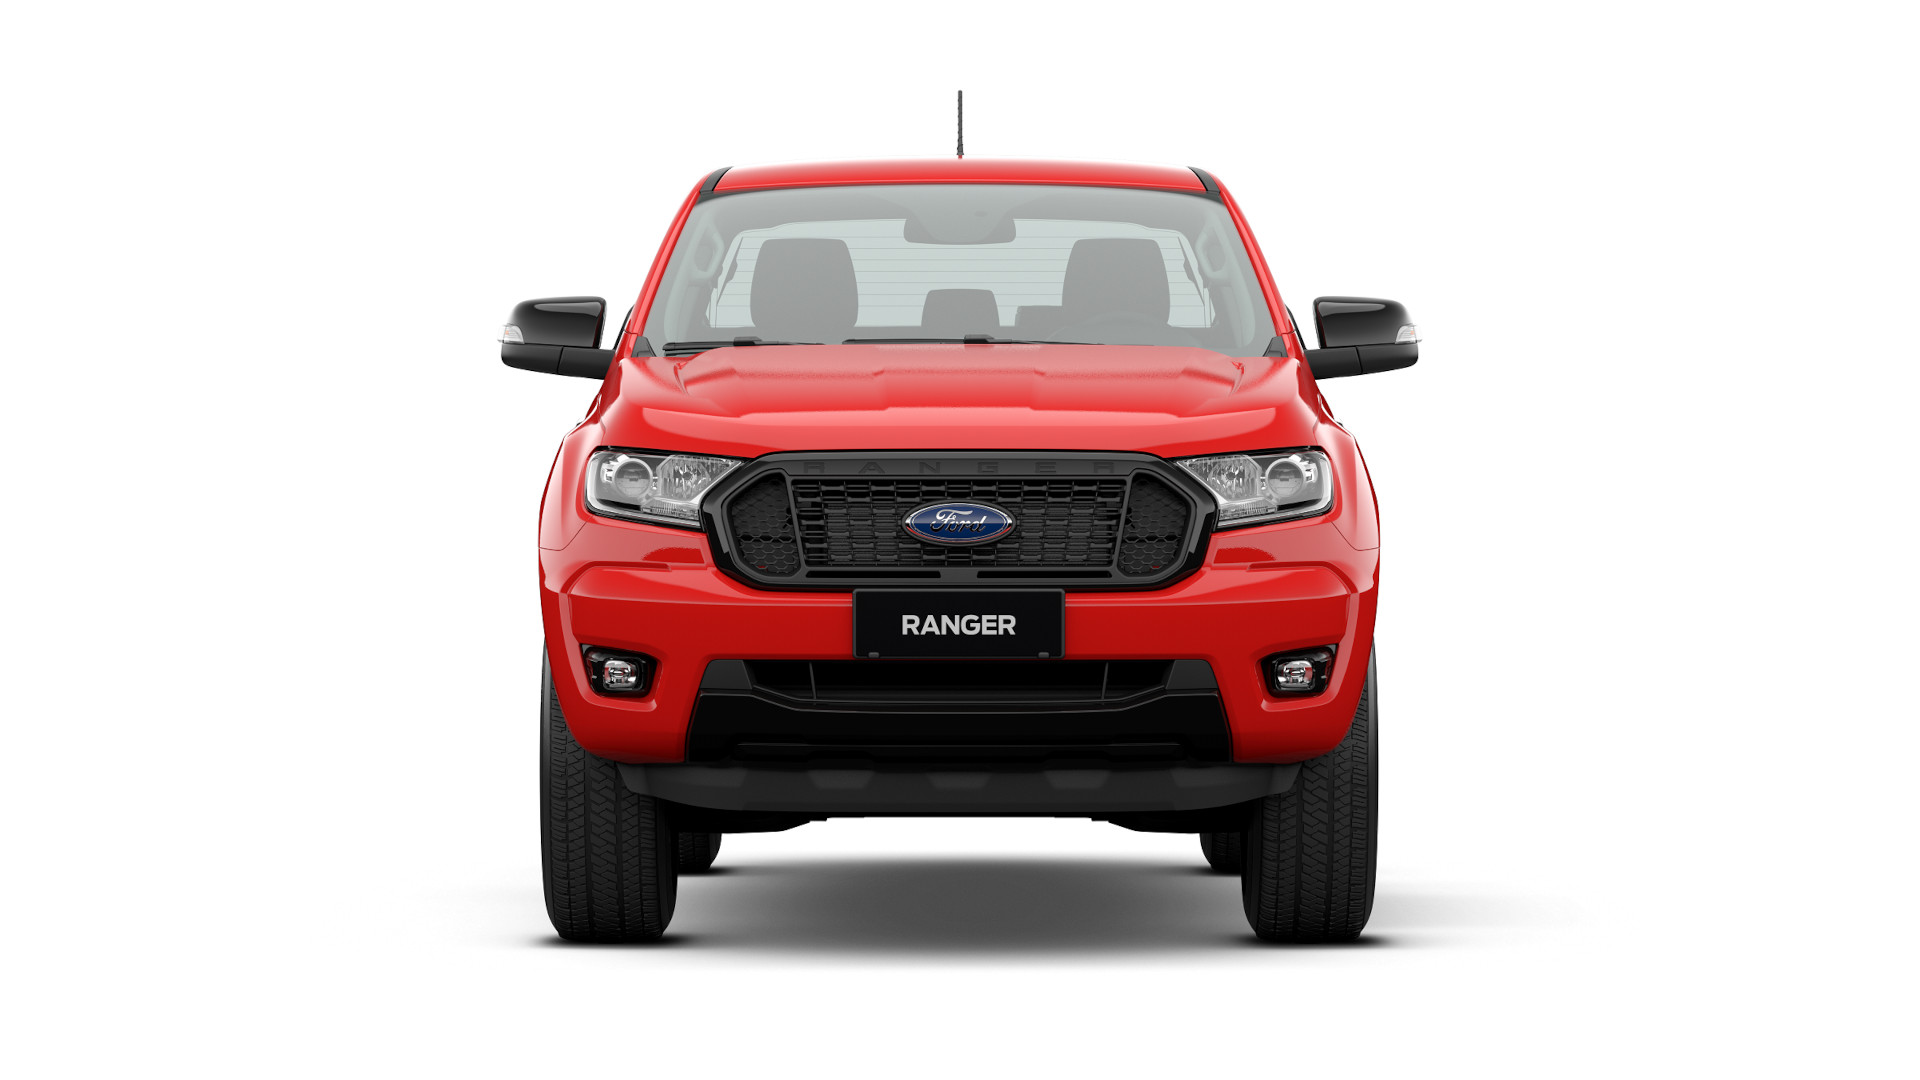 Ford Ranger FX4 XLT - Red Variant